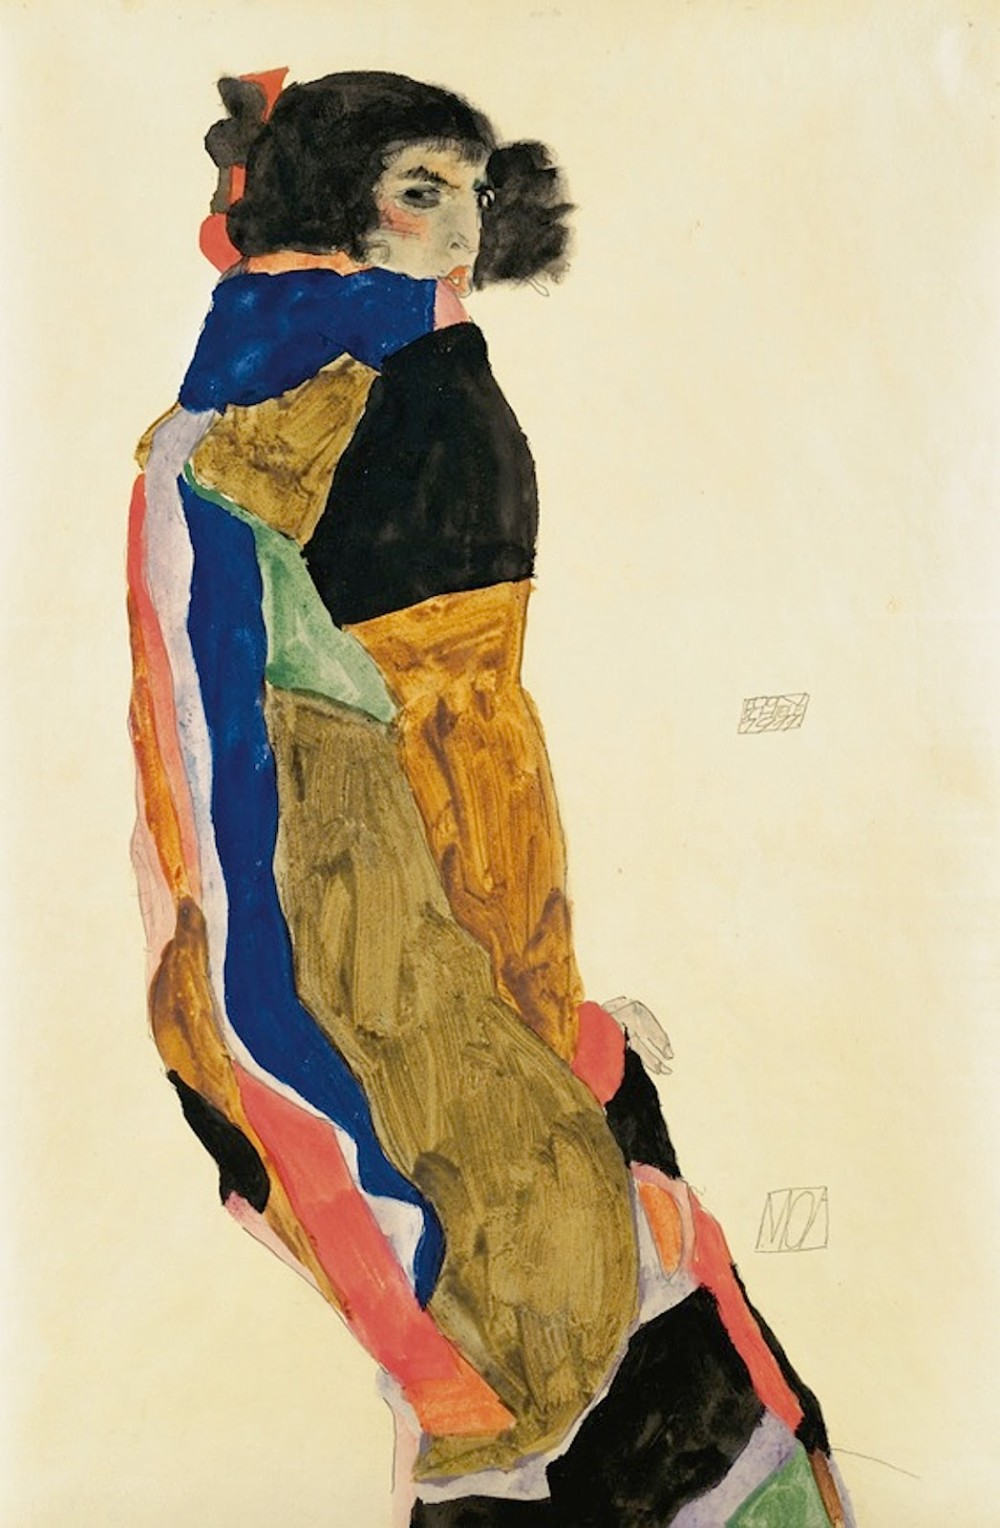 egon-schiele-the-dancer-moa.jpg